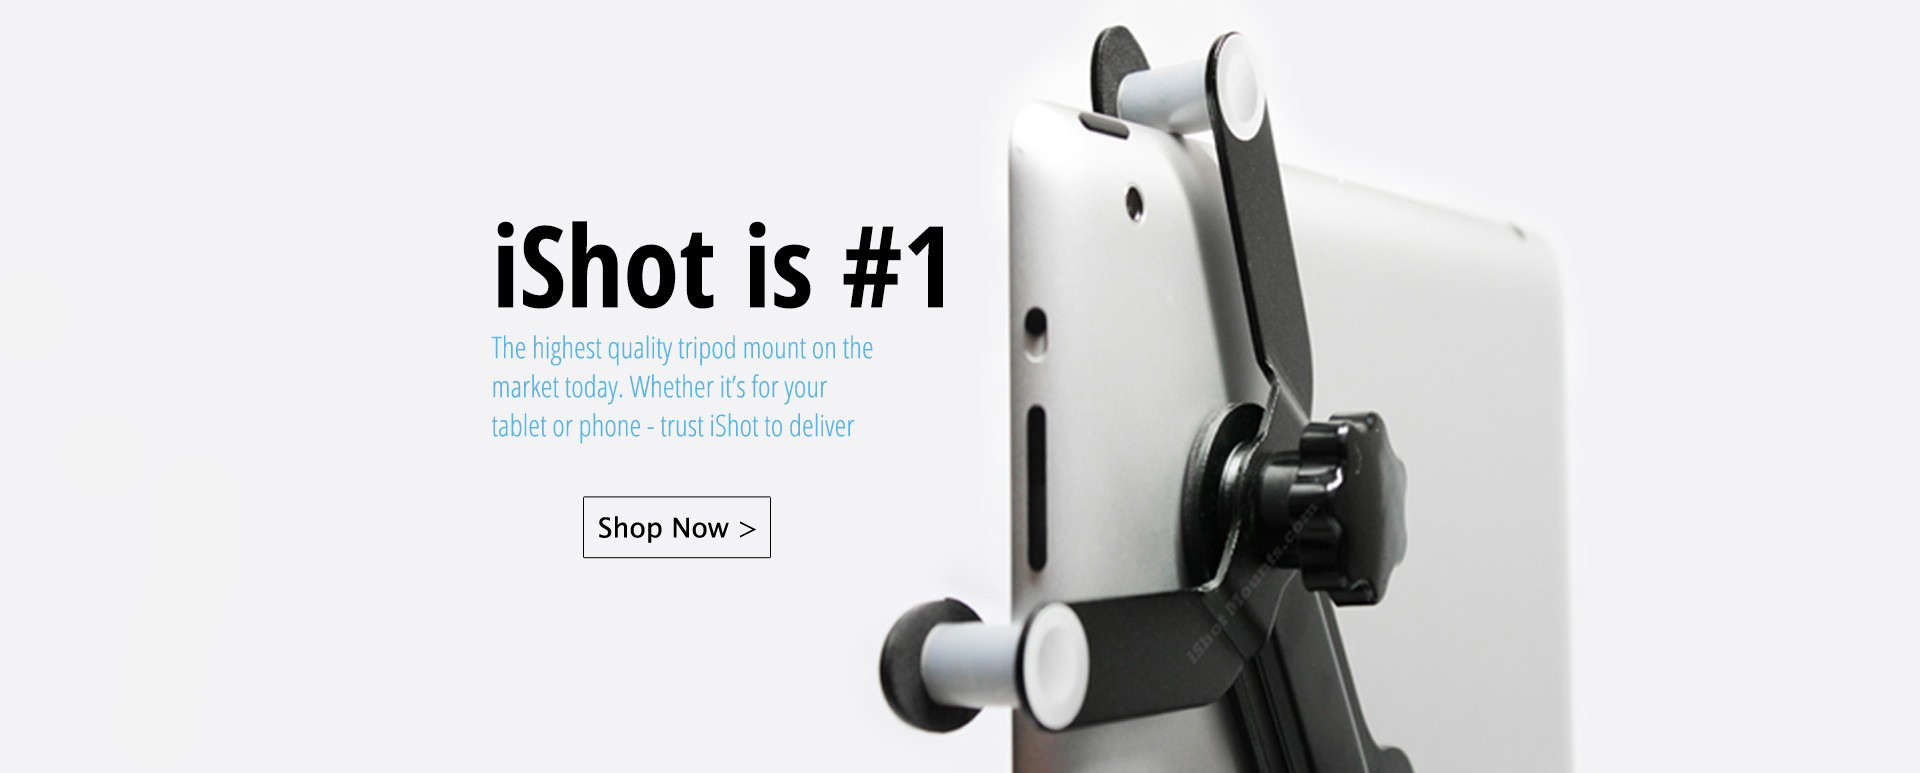 iShot Pro Mounts - Coupons, Promo Codes and Deals